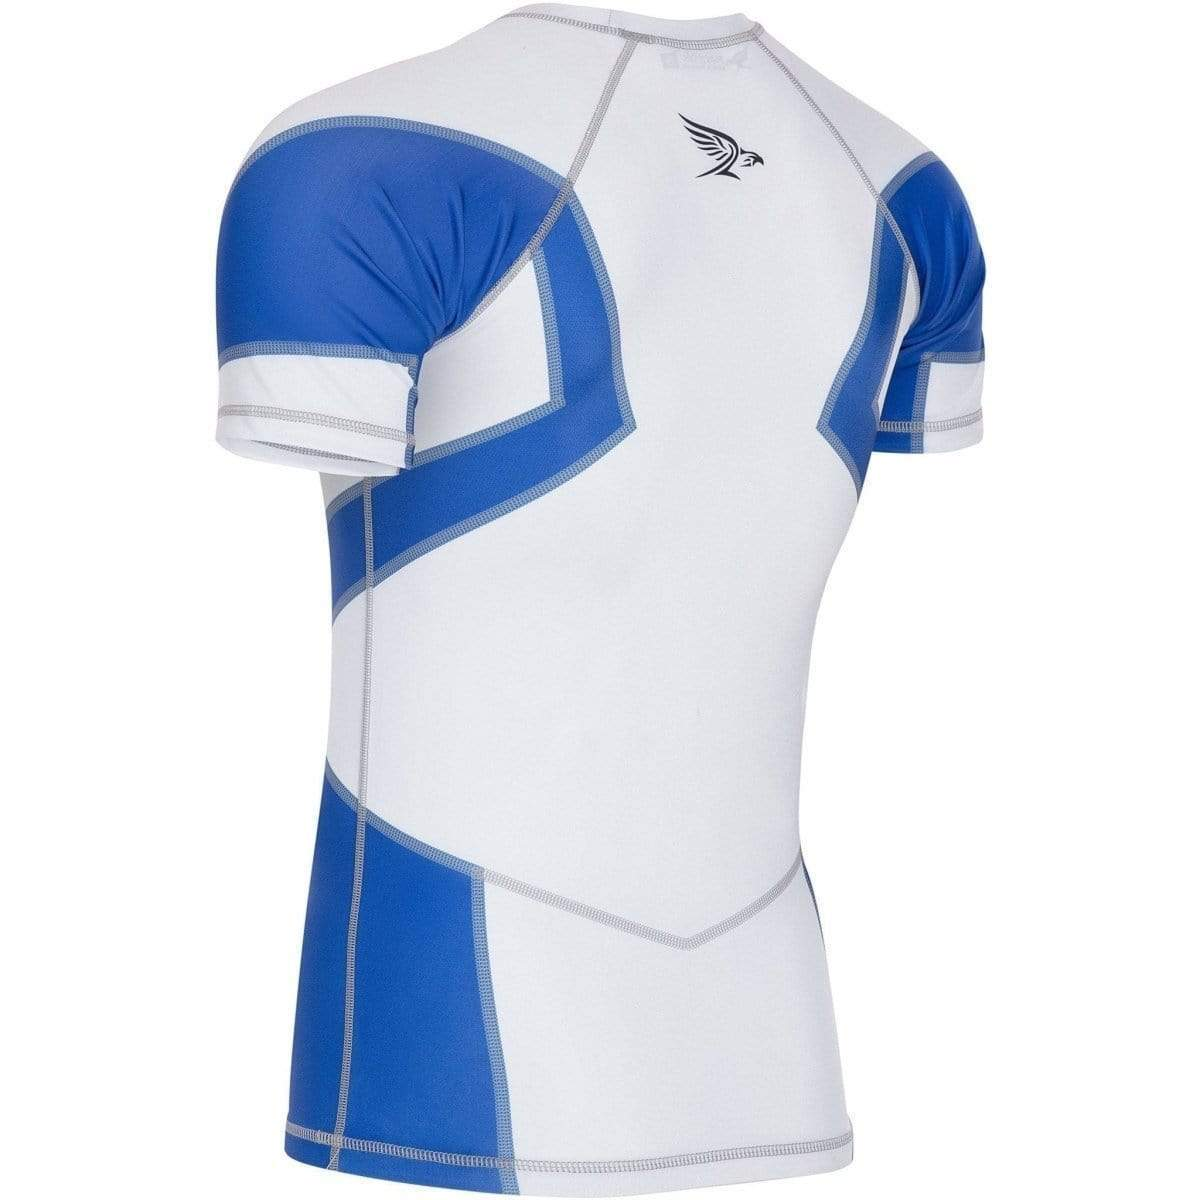 Habrok Rash Guard Transform 2.0 | Ranked Rash Guard Women | Half Sleeve